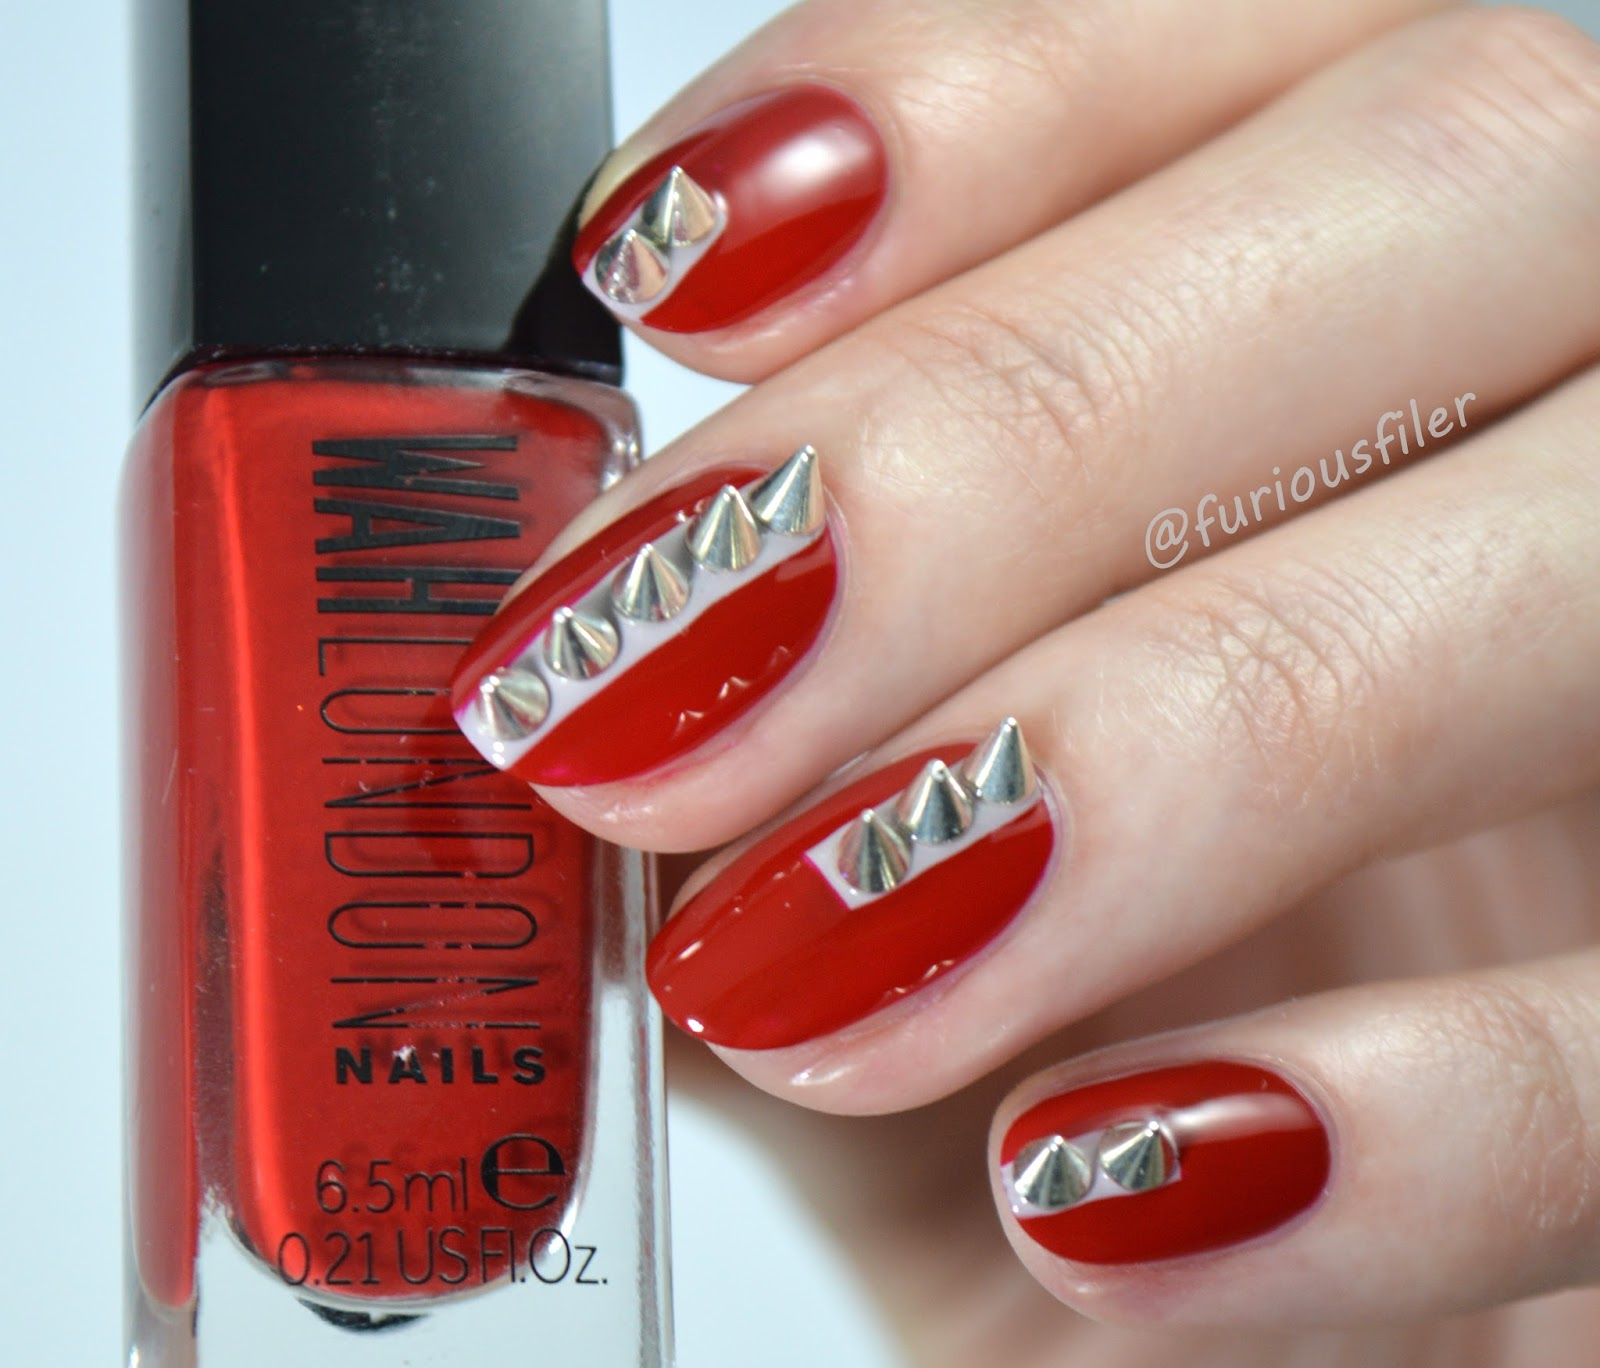 Ririmee meebox review and badass nail art furious filer nail art prinsesfo Image collections